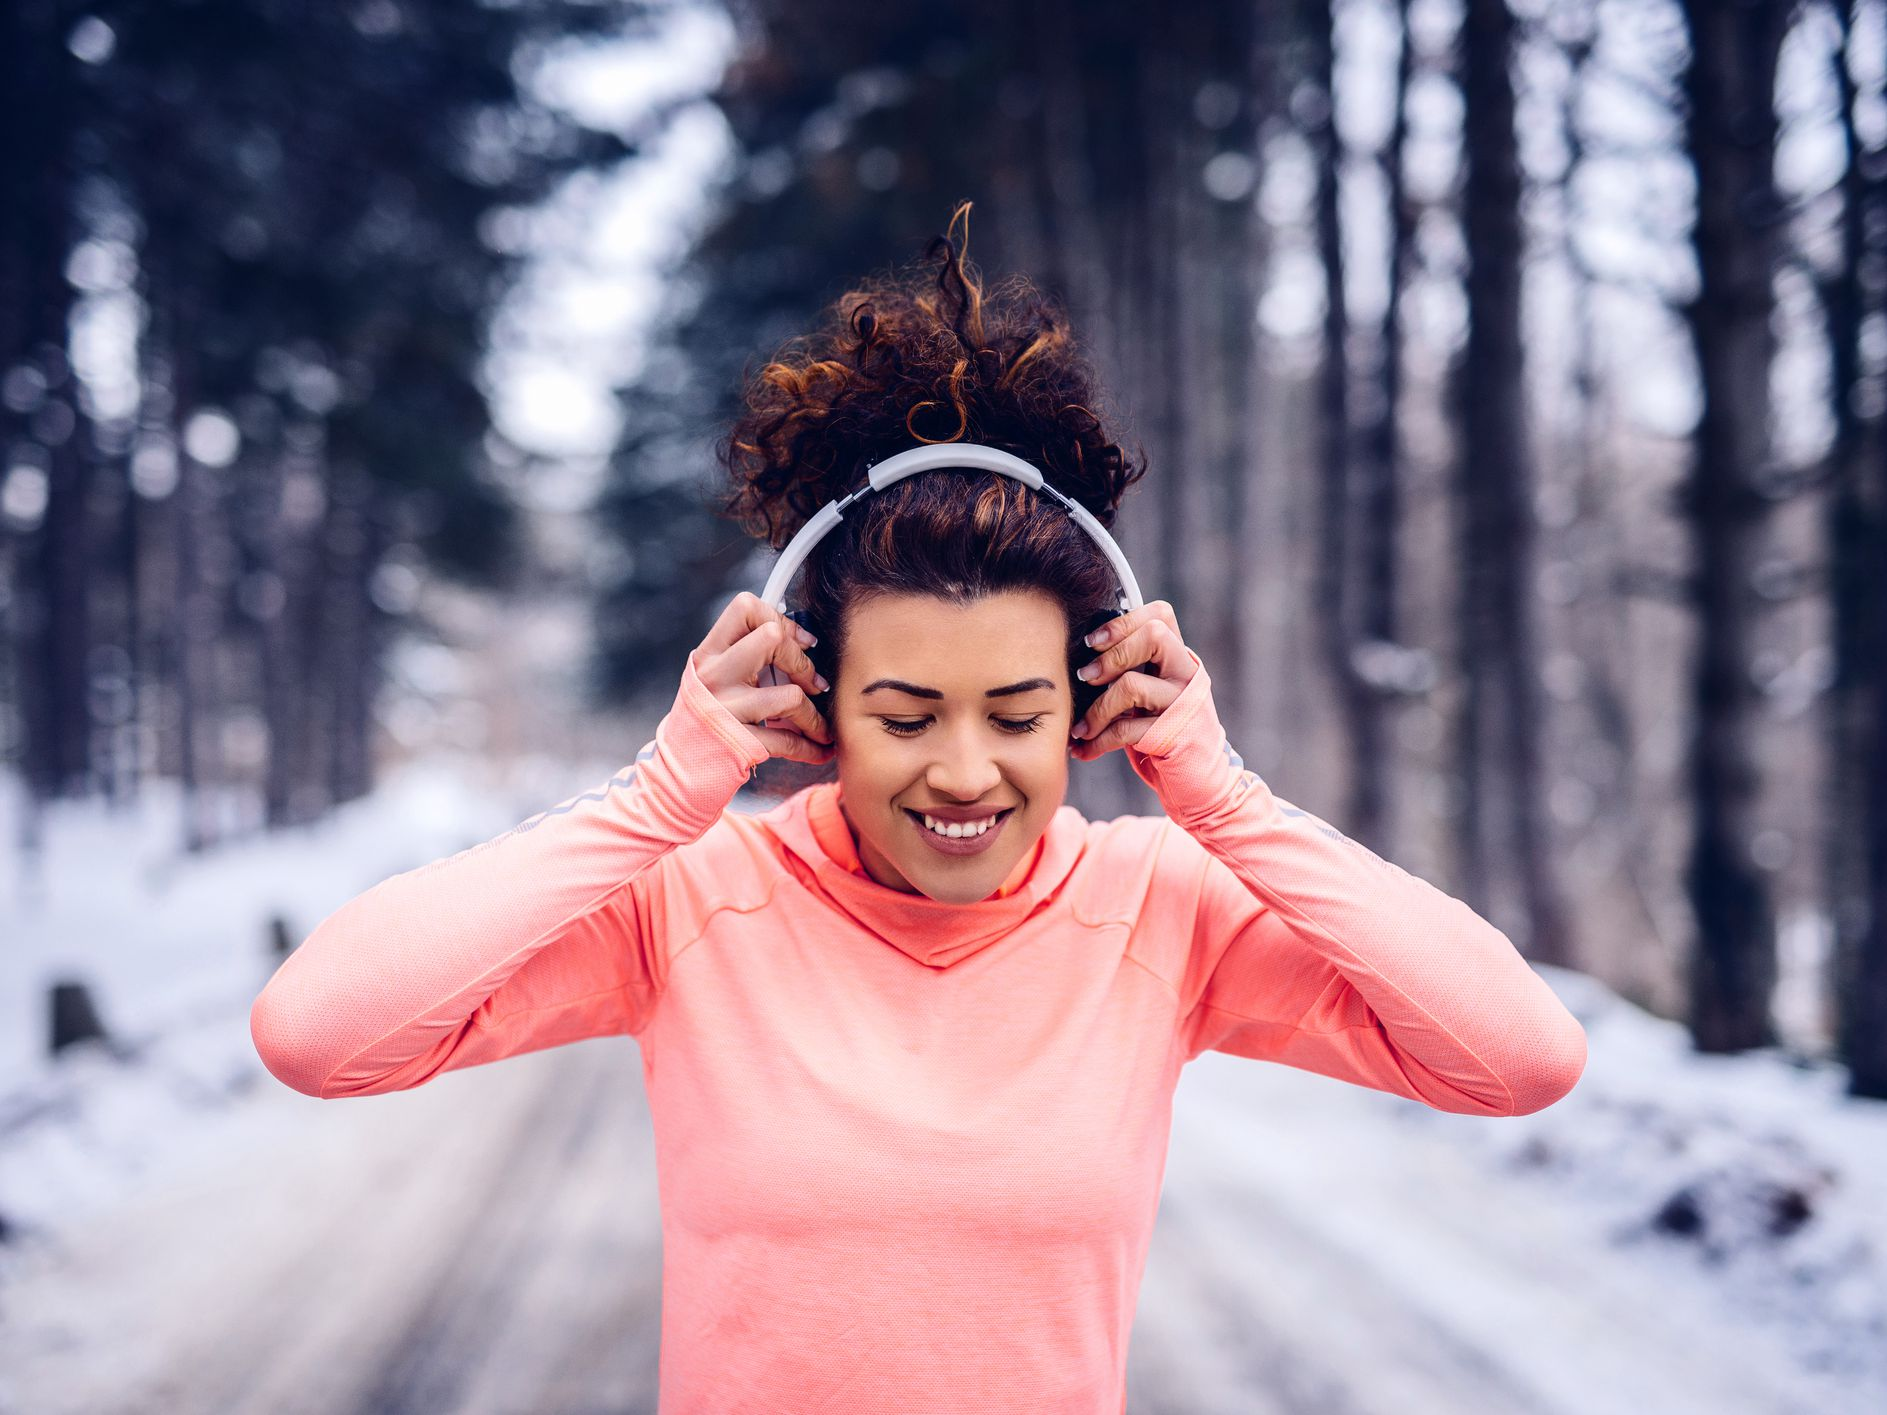 Best Running Songs